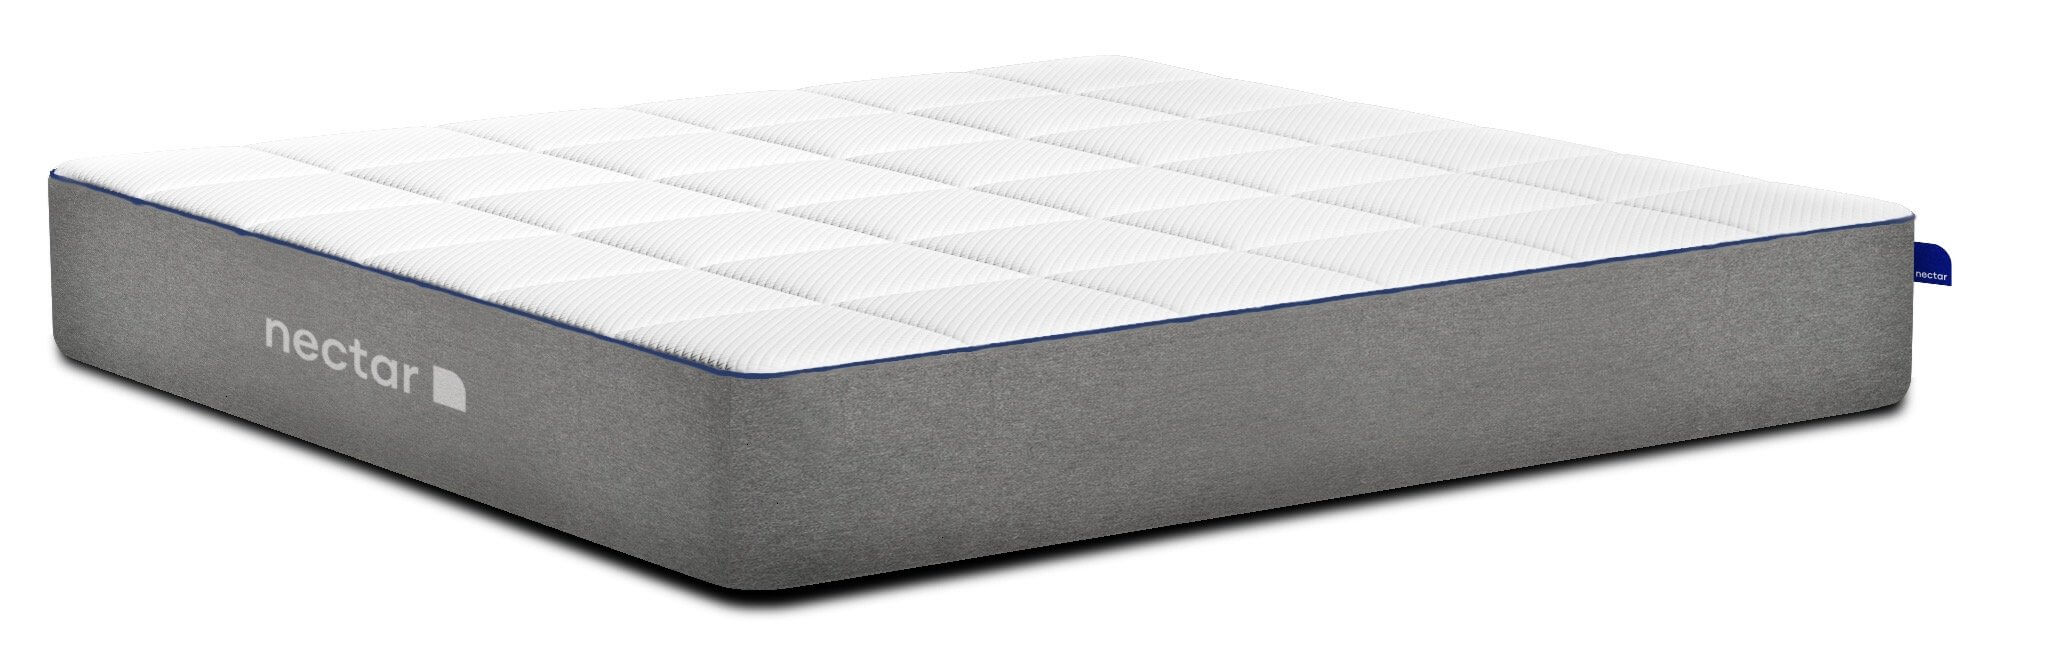 best mattress under 1000 nectar